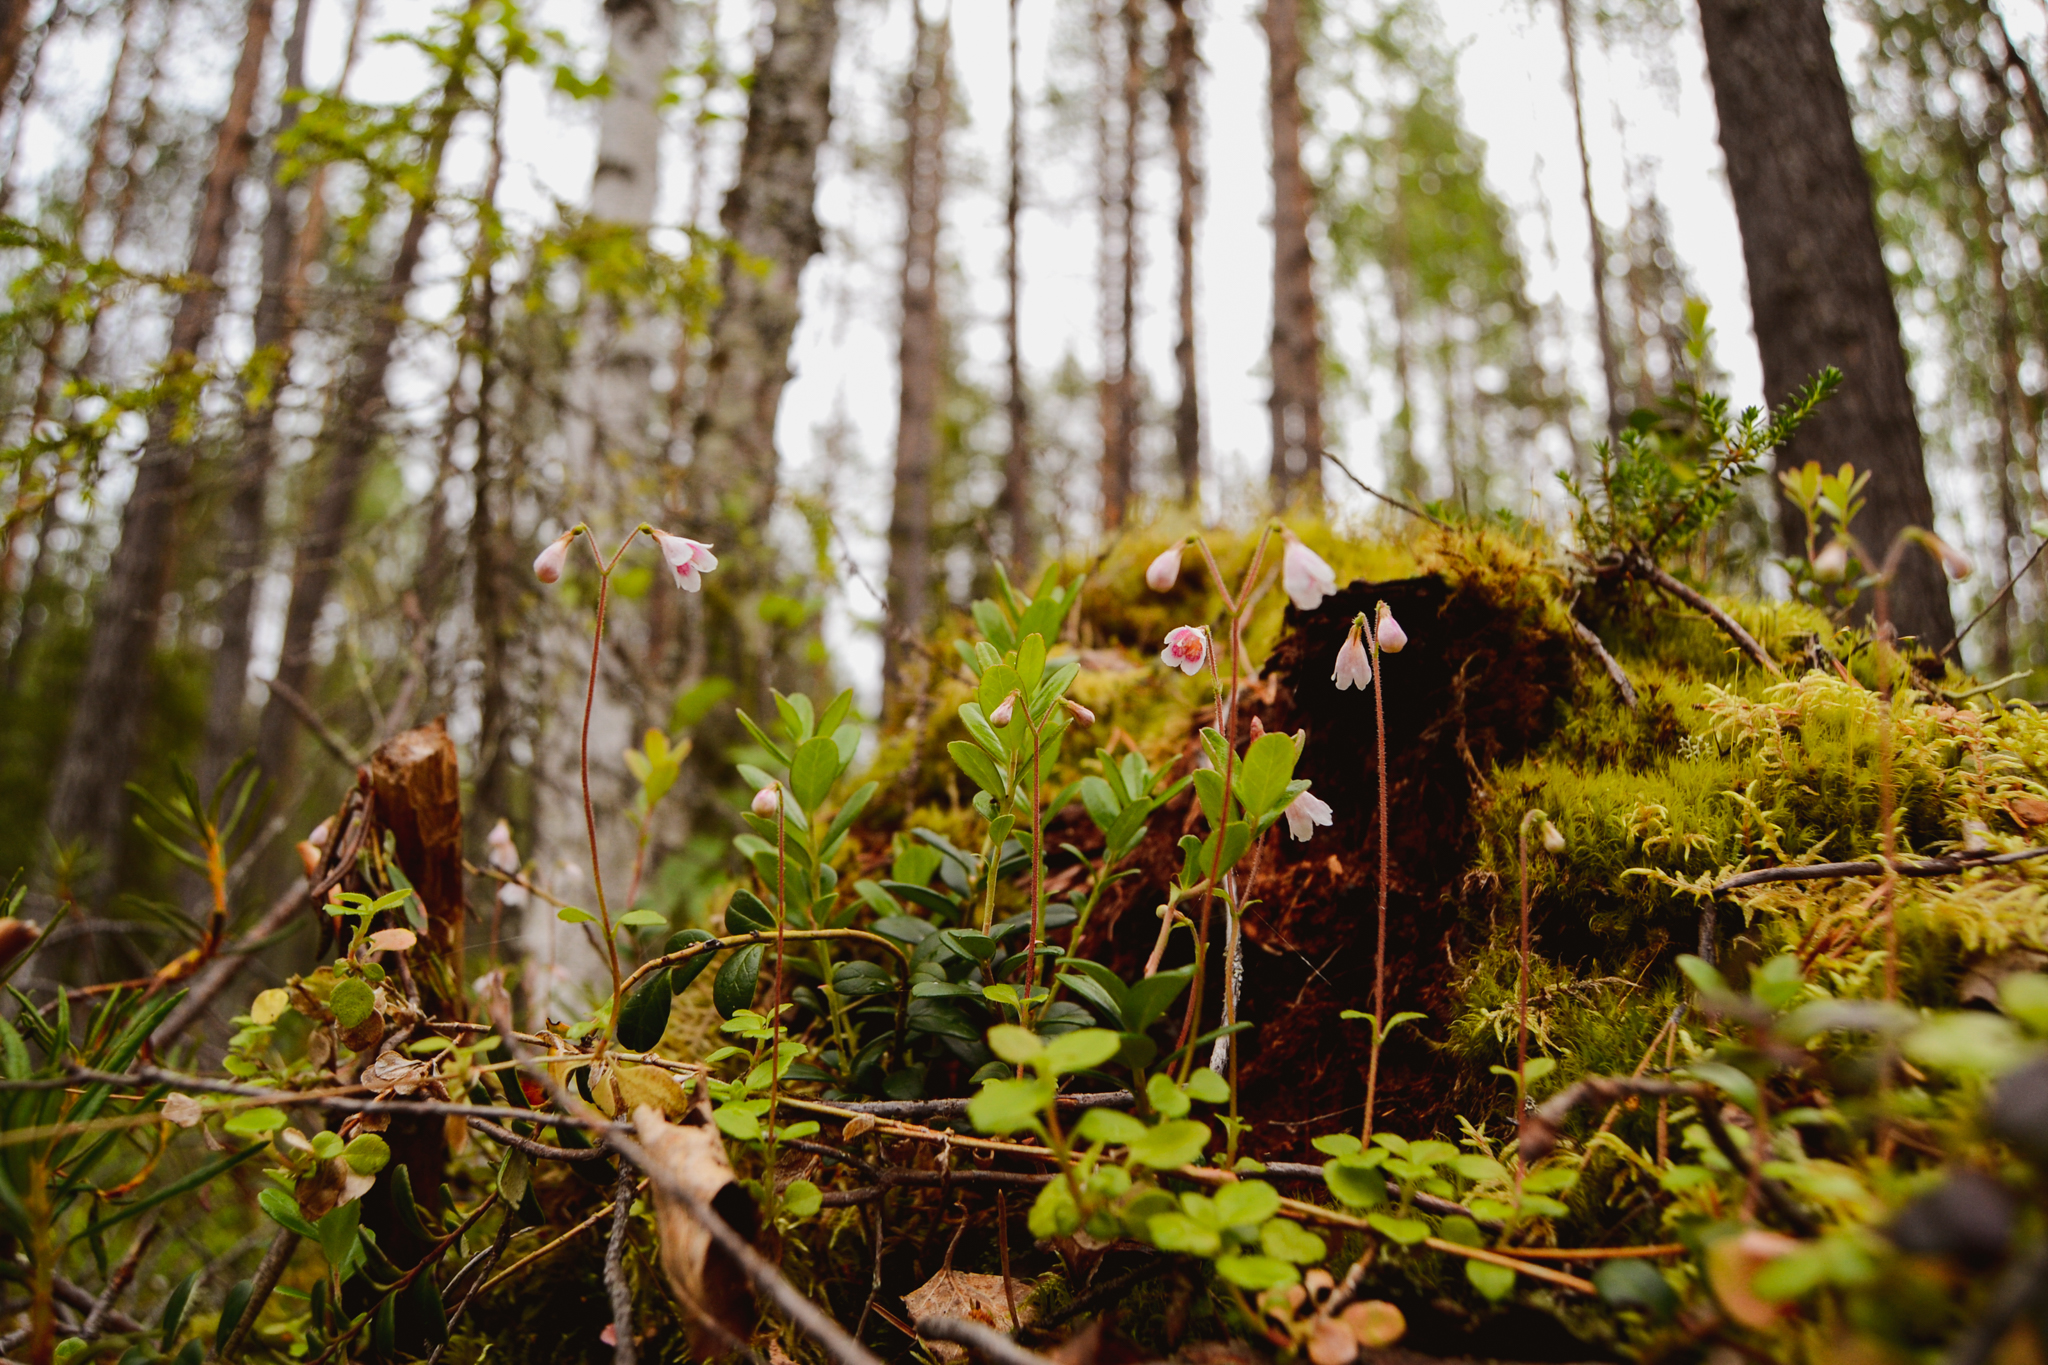 Finnish summer ways to connect with nature and yourself by having a forest walk